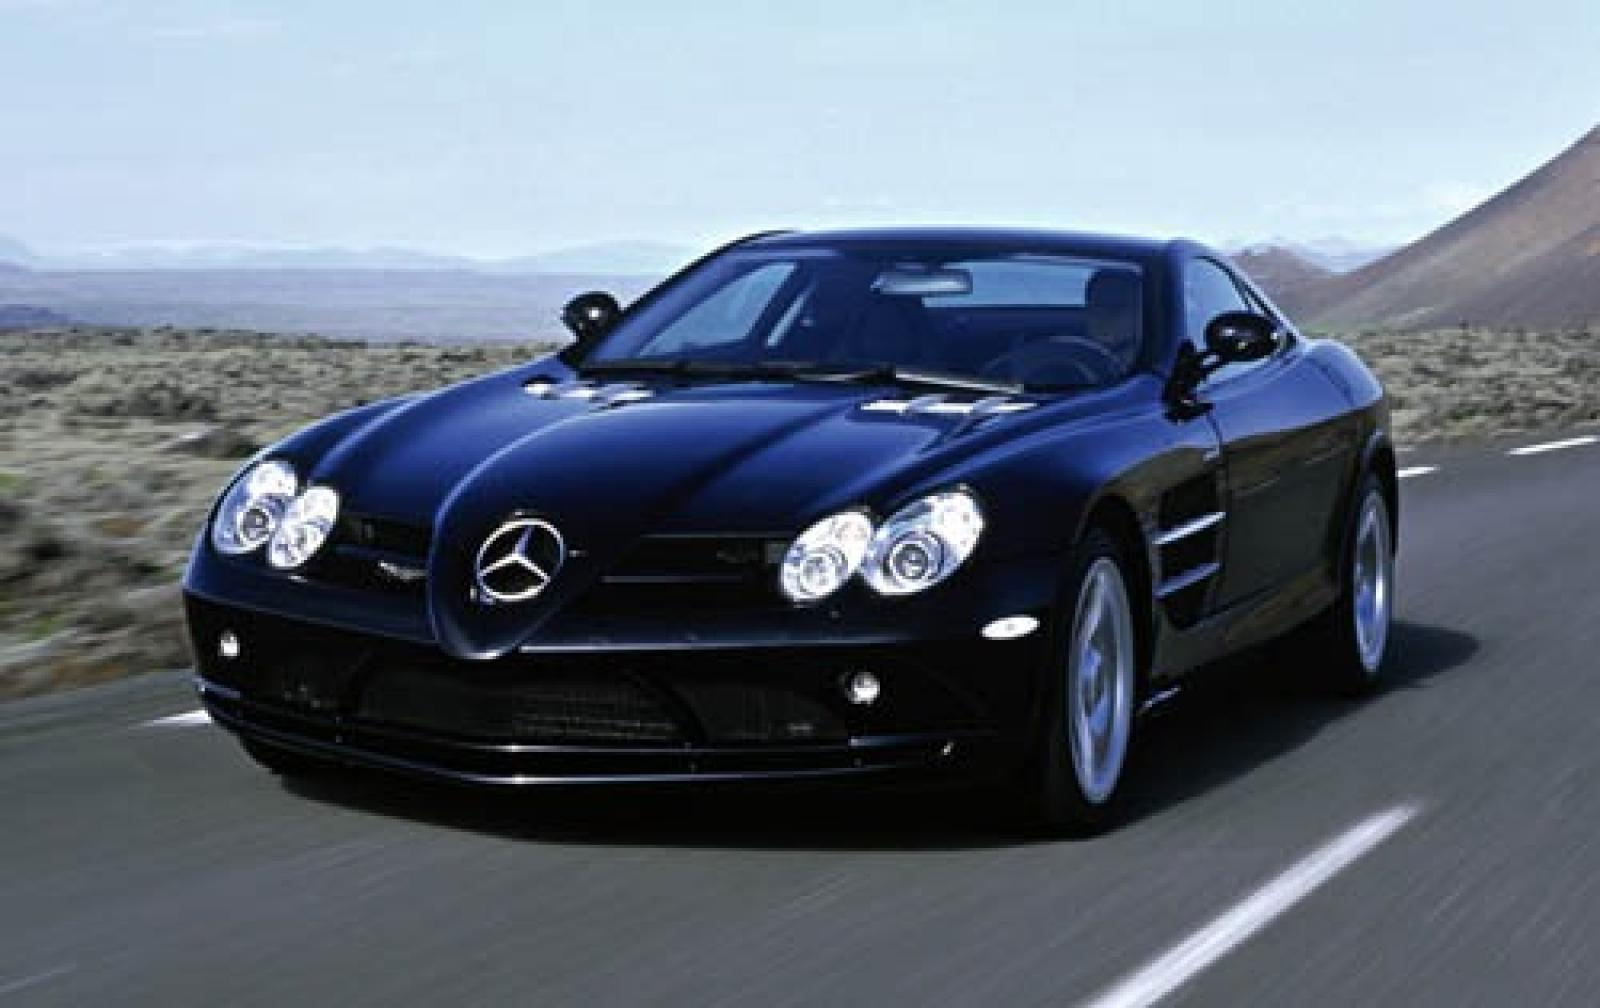 2005 mercedes benz slr mclaren information and photos for Mercedes benz coupe 2005